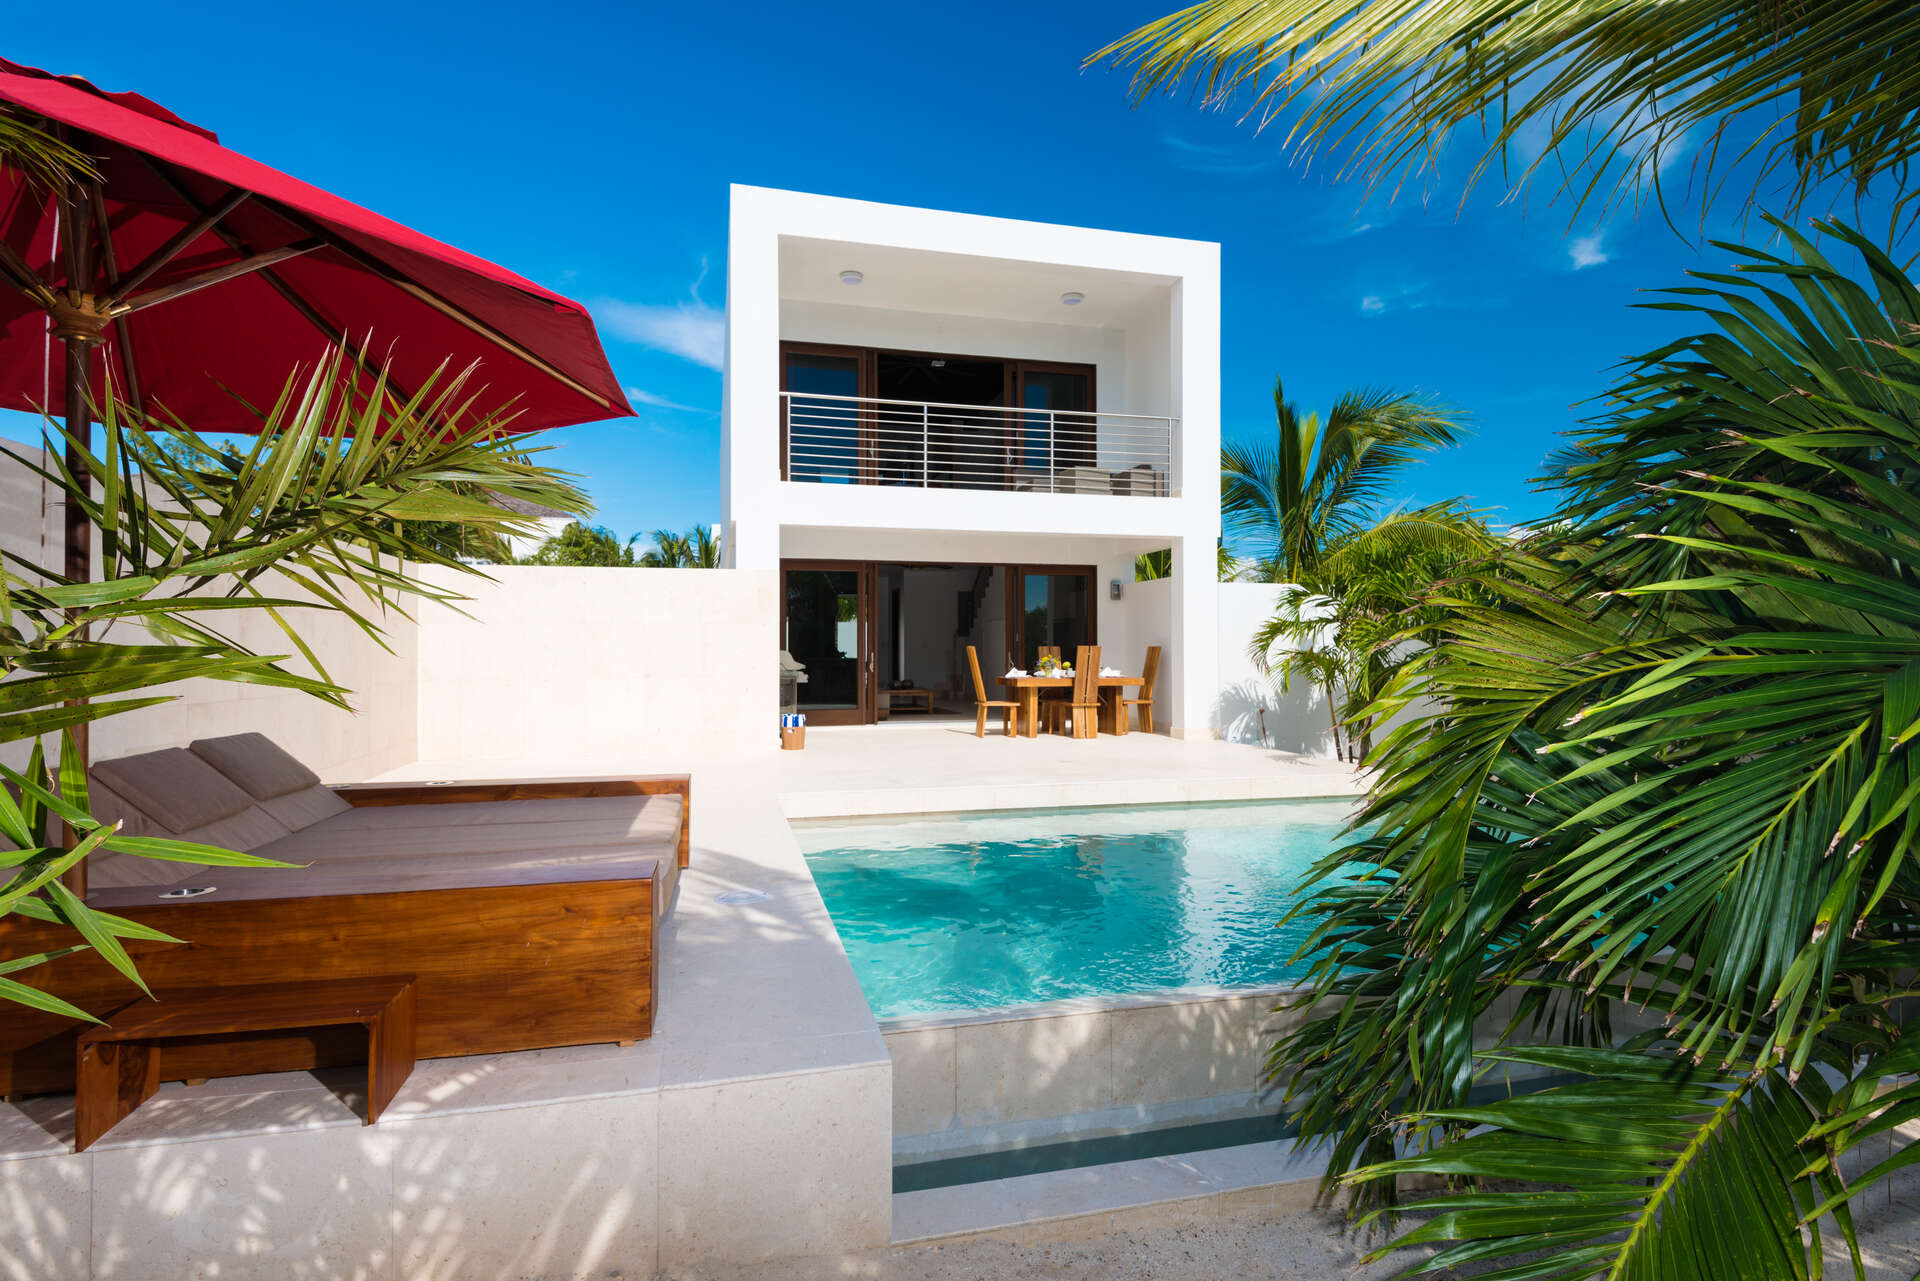 Luxury villa rentals caribbean - Turks and caicos - Providenciales - Turtle cove - Sugar Kube - Image 1/13